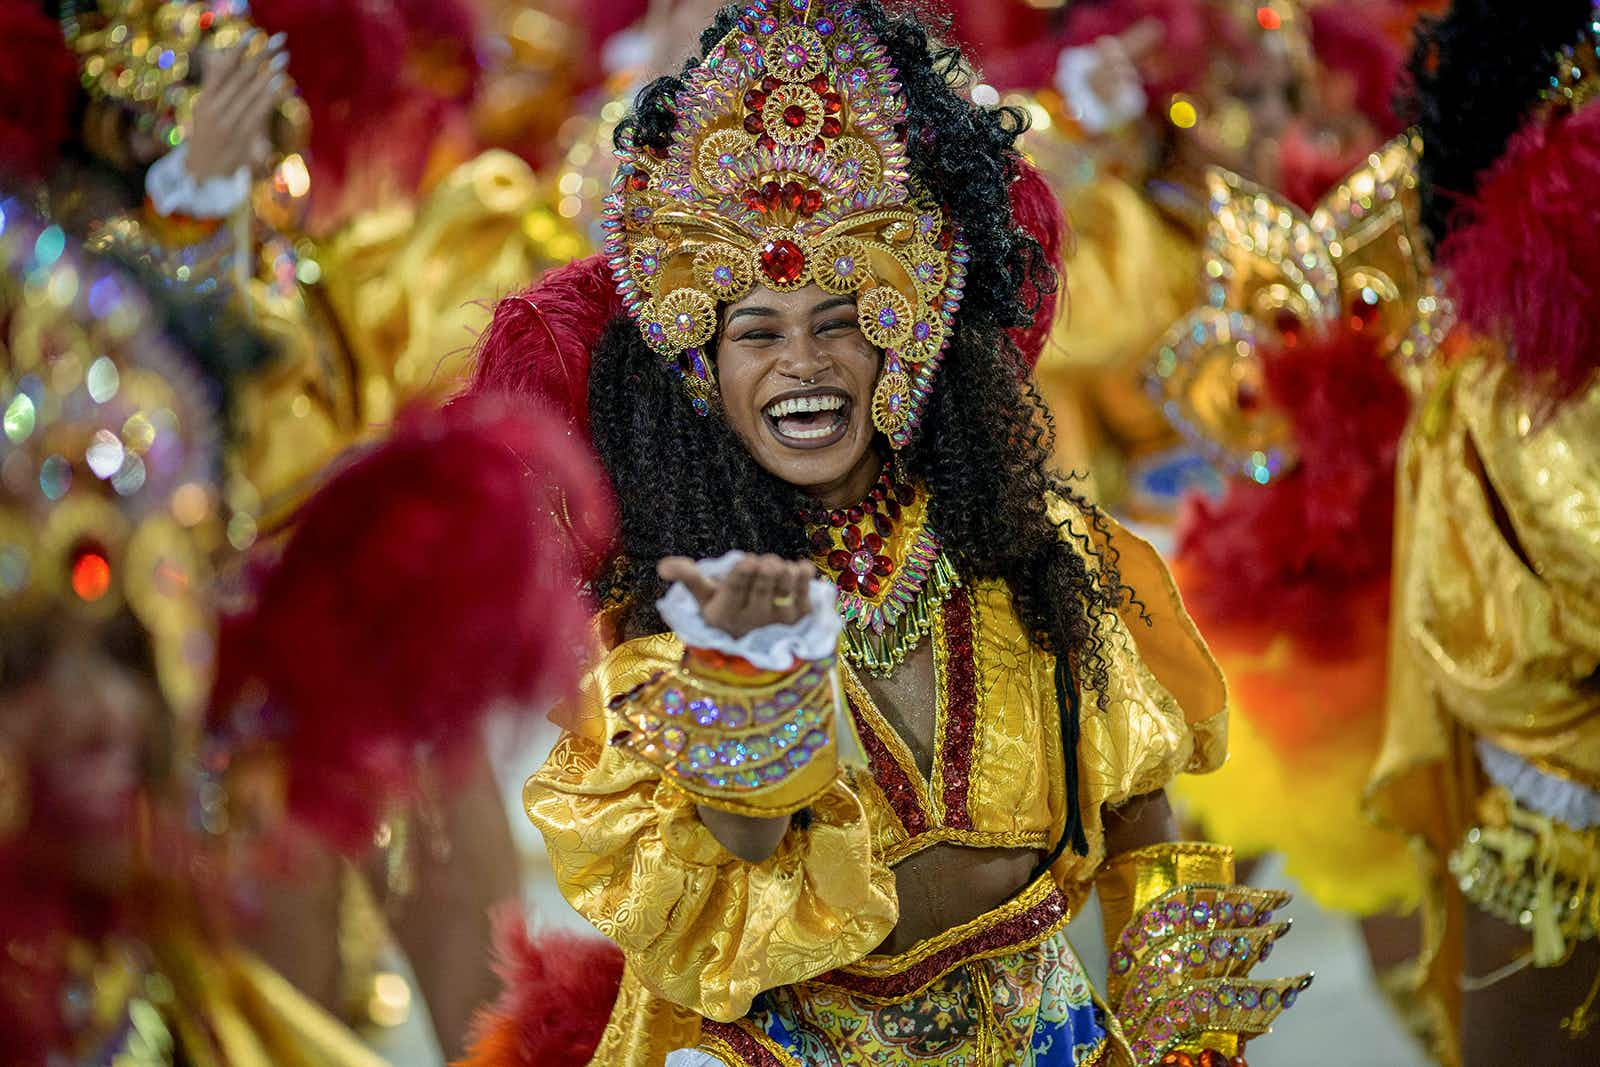 A reveller of the Sao Clemente performs on the first night of Rio's Carnival at the Sambadrome in Rio de Janeiro, Brazil, on February 11, 2018. / AFP PHOTO / Mauro PIMENTEL        (Photo credit should read MAURO PIMENTEL/AFP/Getty Images)